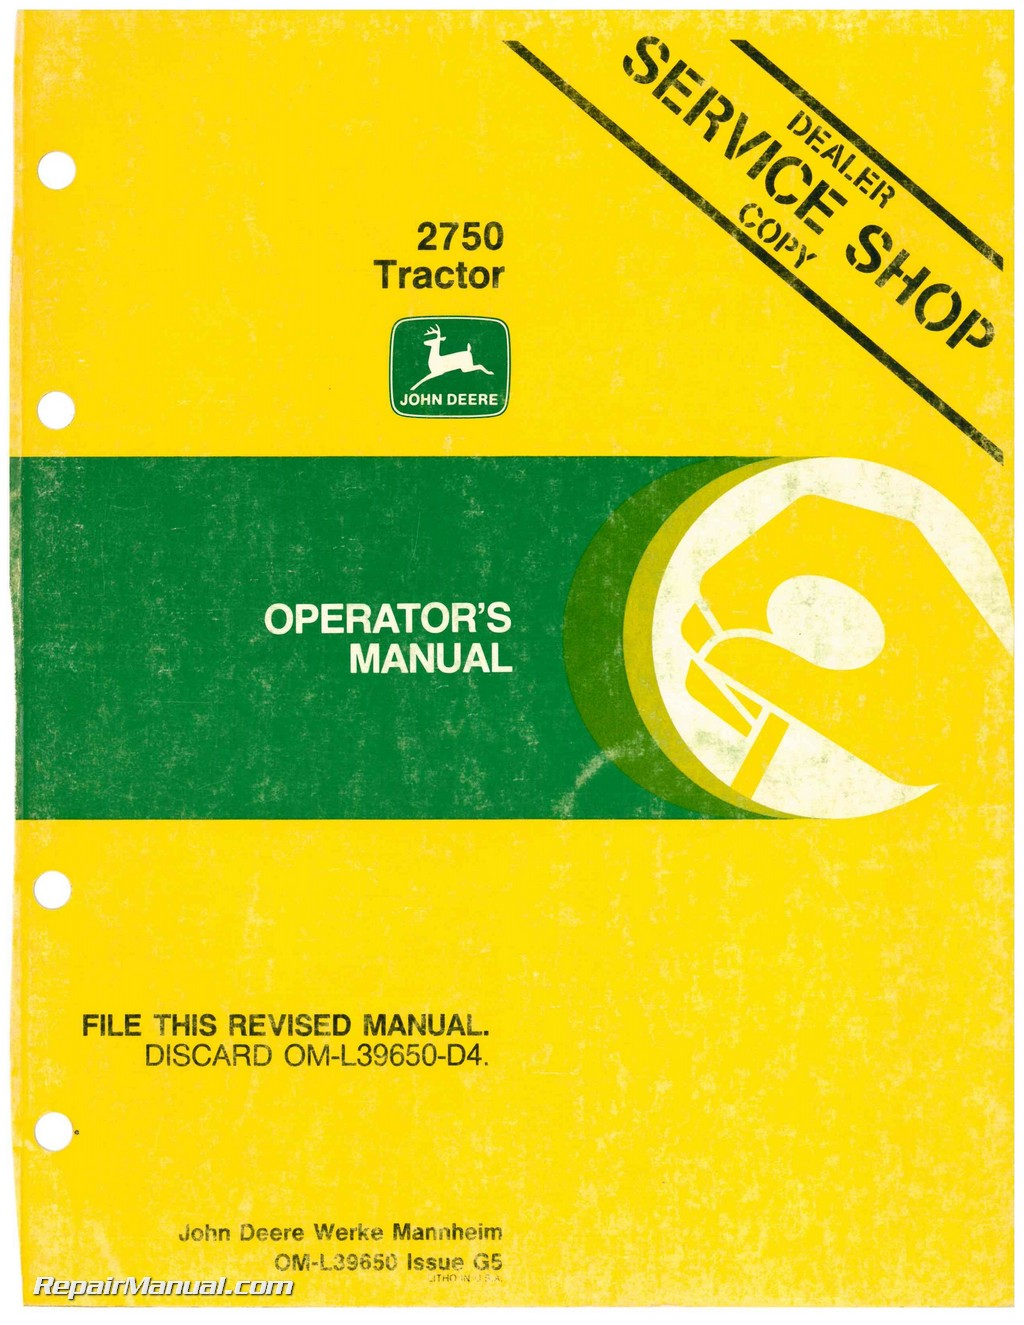 John Deere 2750 Wiring Diagram 8640 Tractor Operators Manual 1010